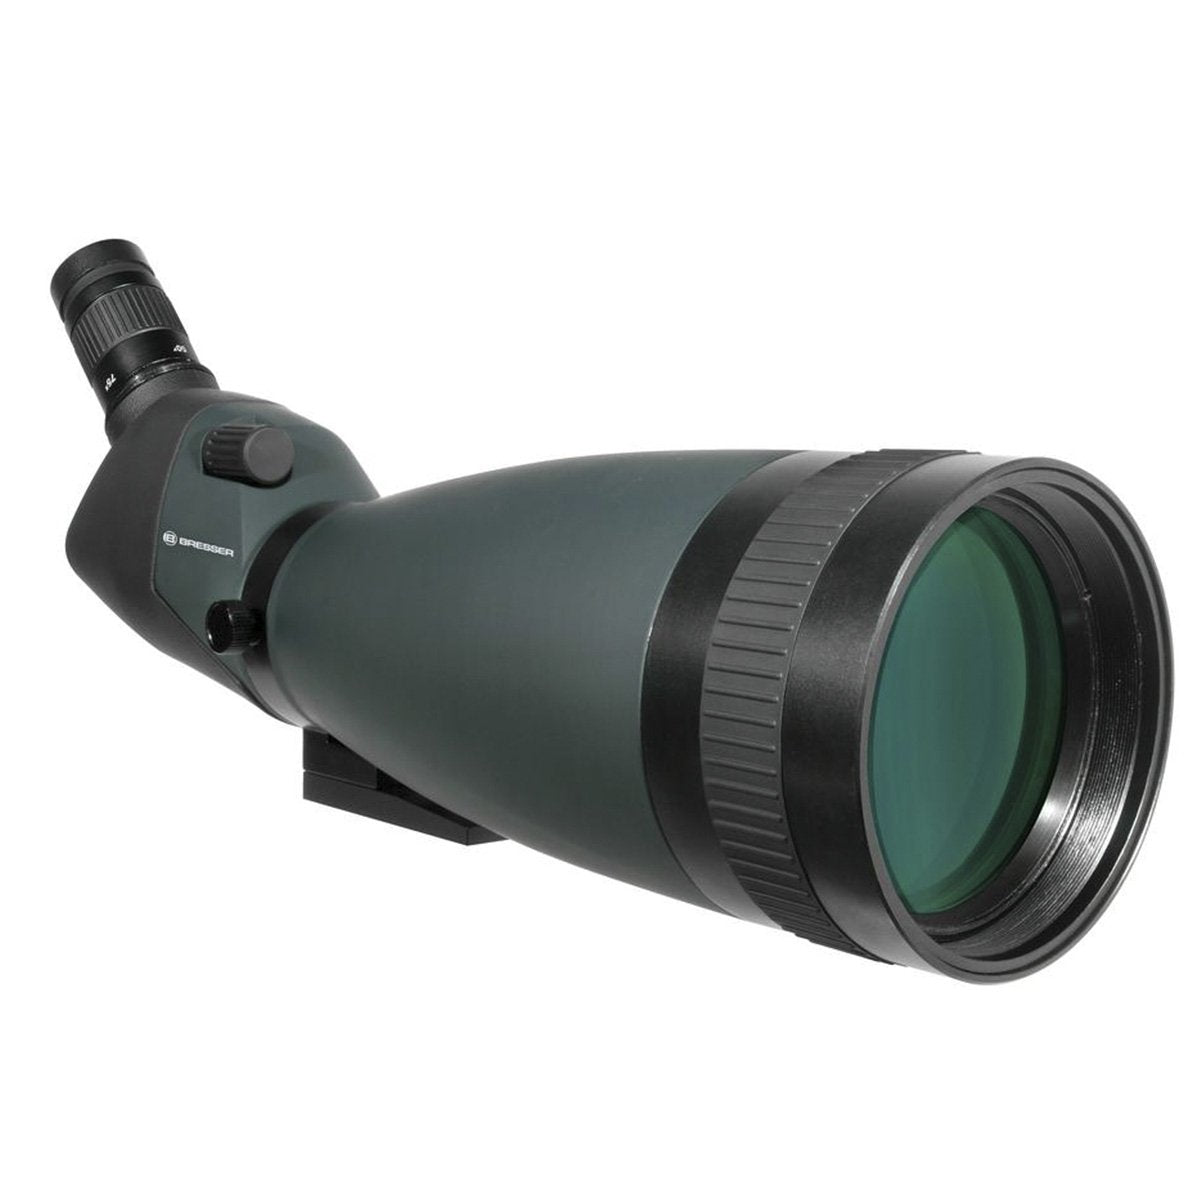 Bresser Pirsch 25-75x100mm 45° Zoom Spotting Scope